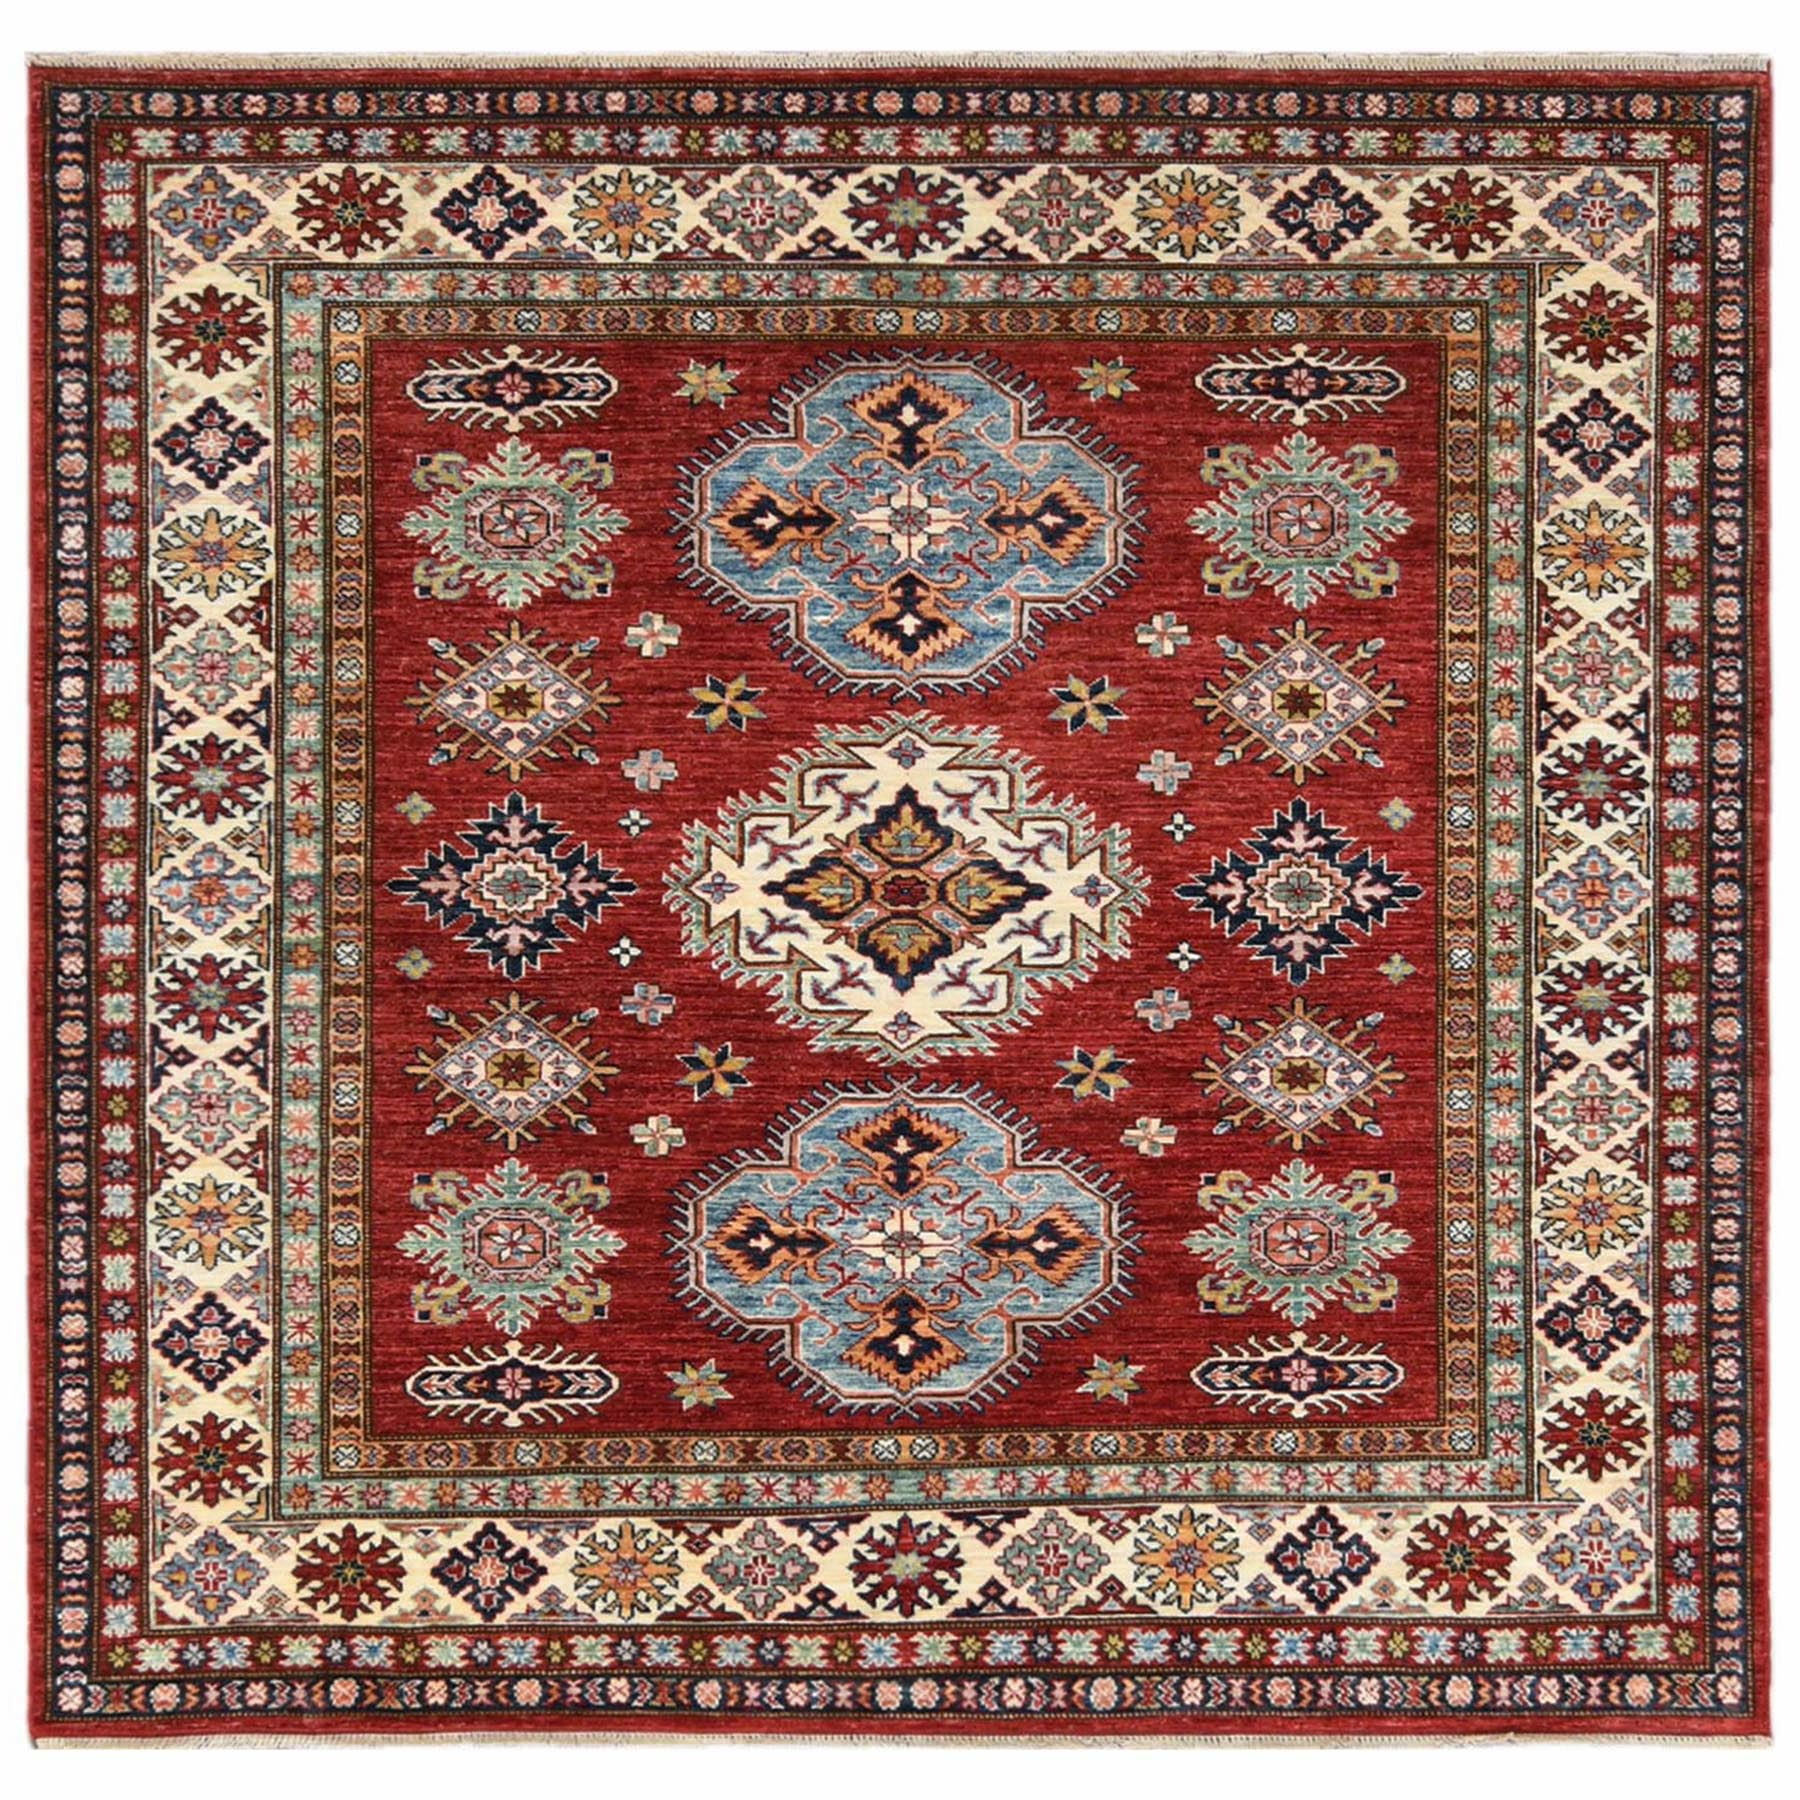 Caucasian Collection Hand Knotted Red Rug No: 1122348